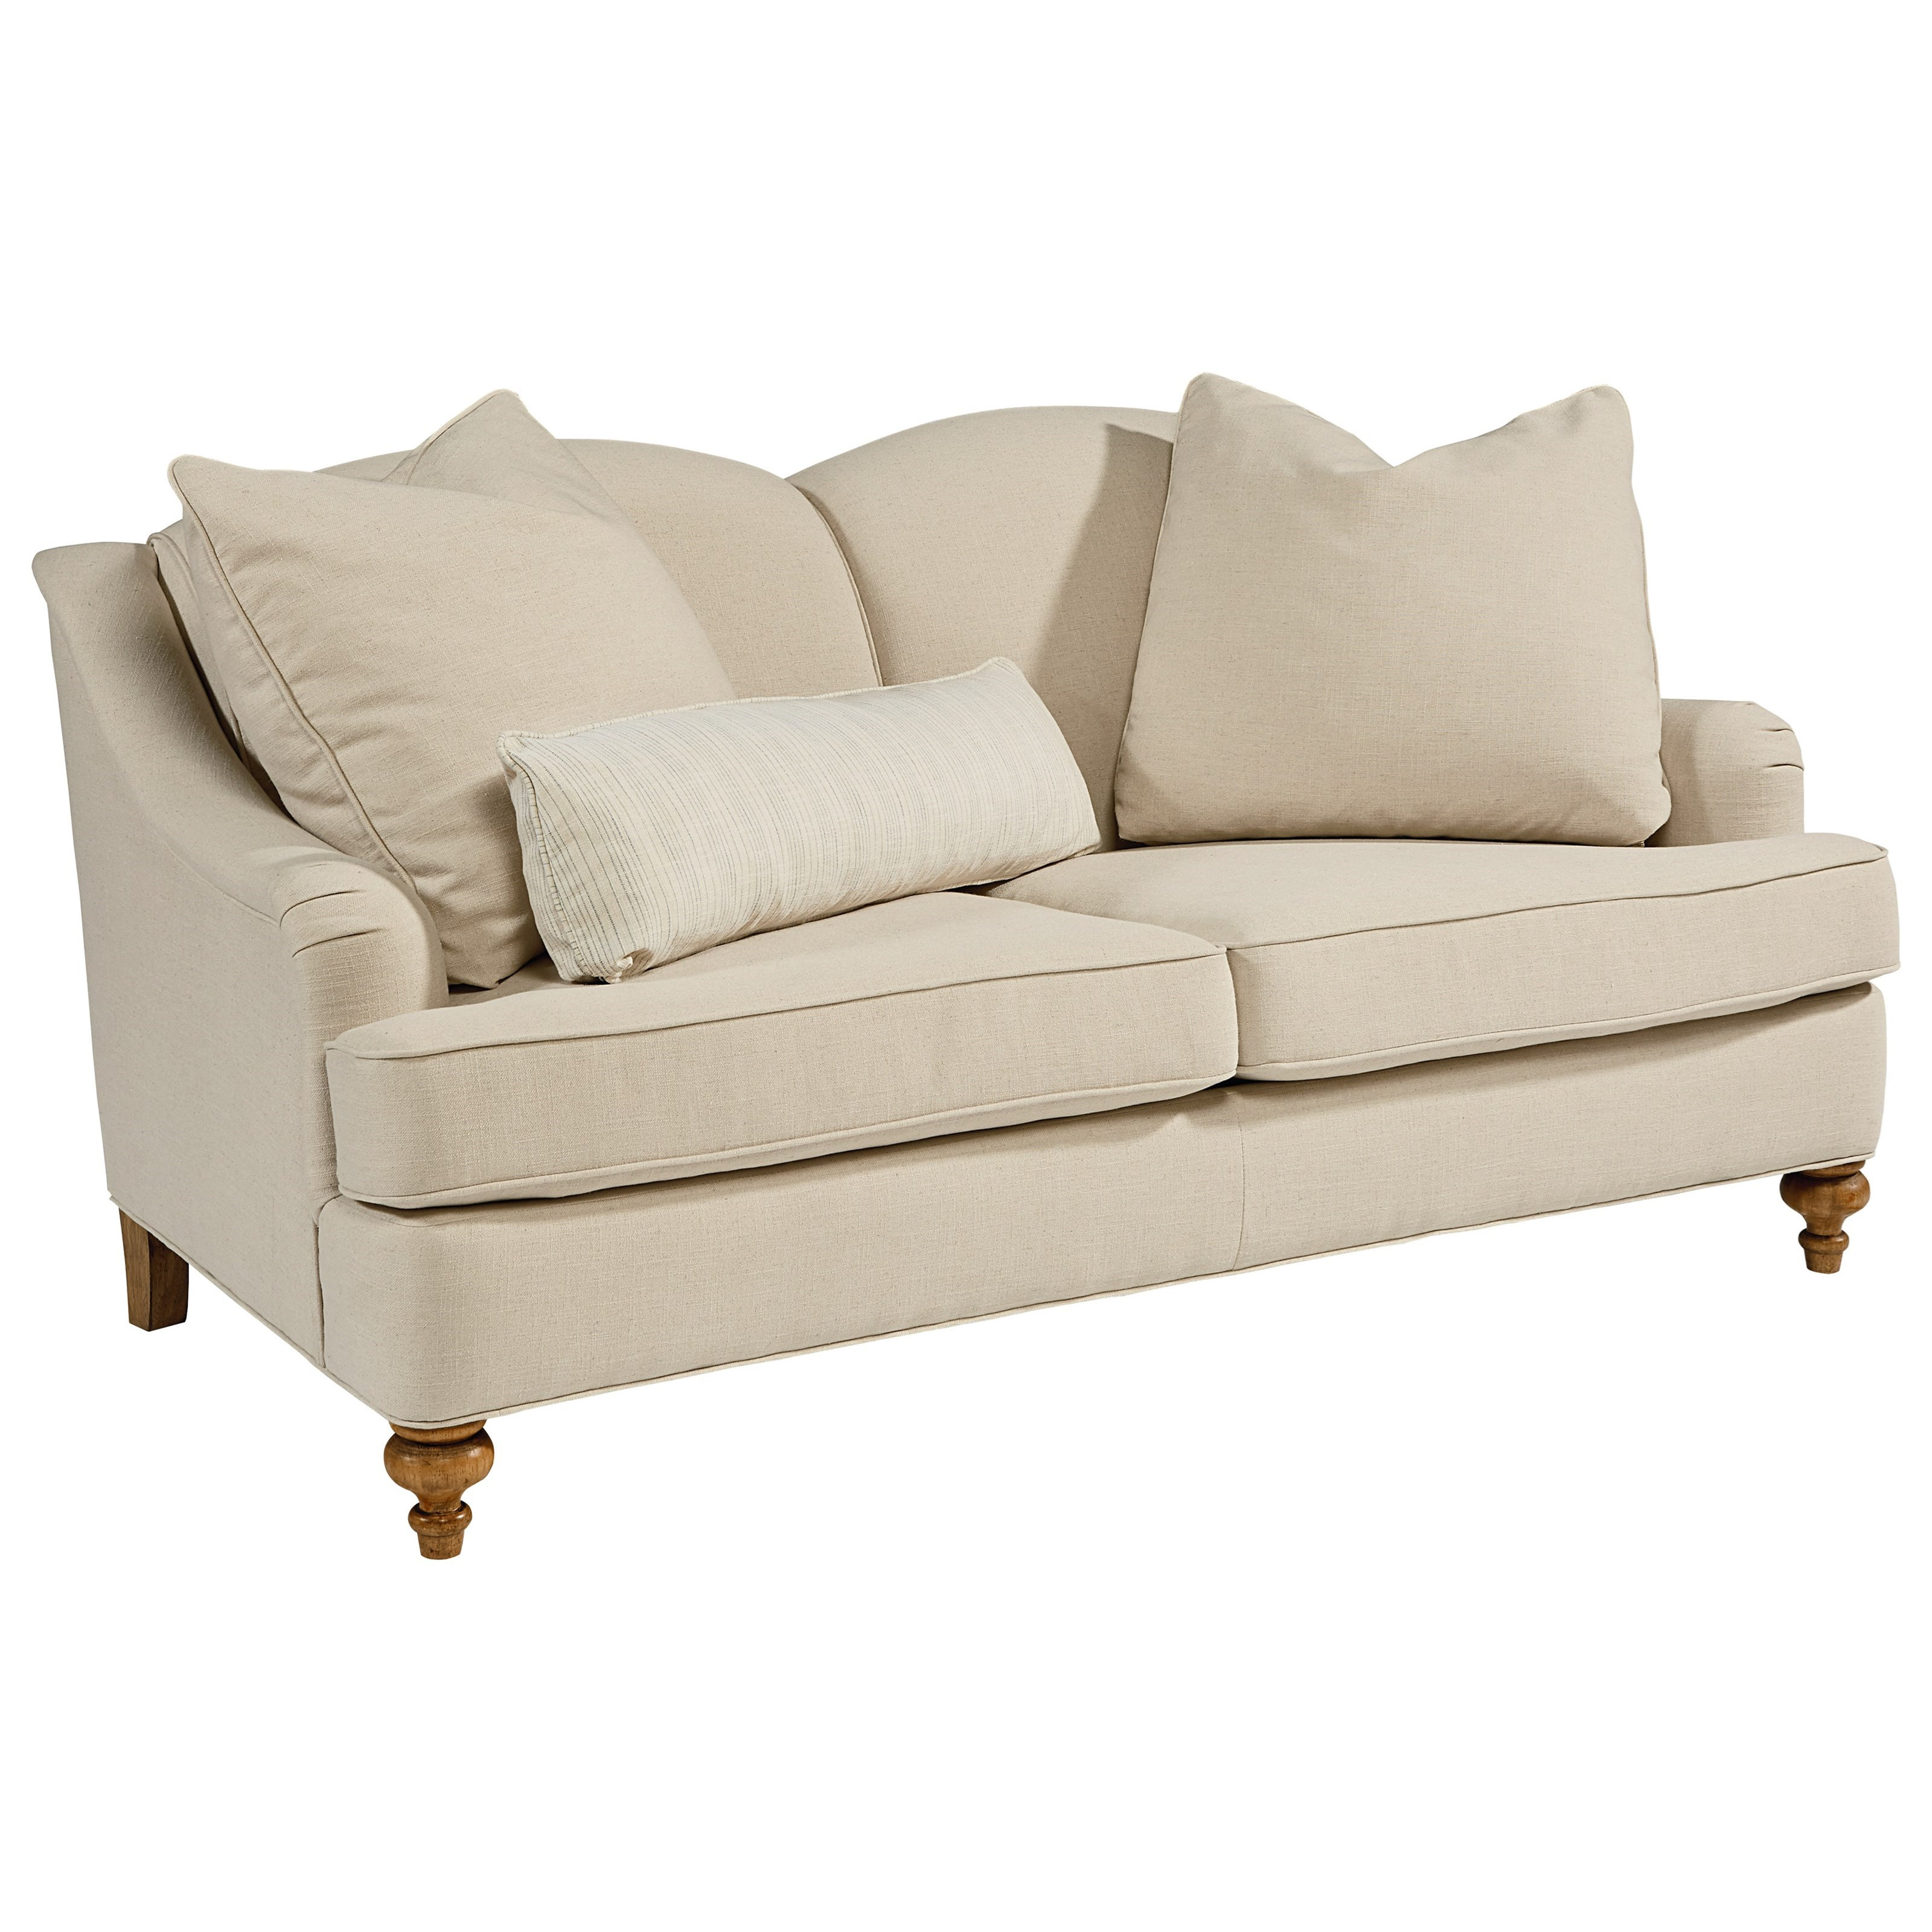 Loveseat By Magnolia Home By Joanna Gaines Wolf And Gardiner Wolf Furniture